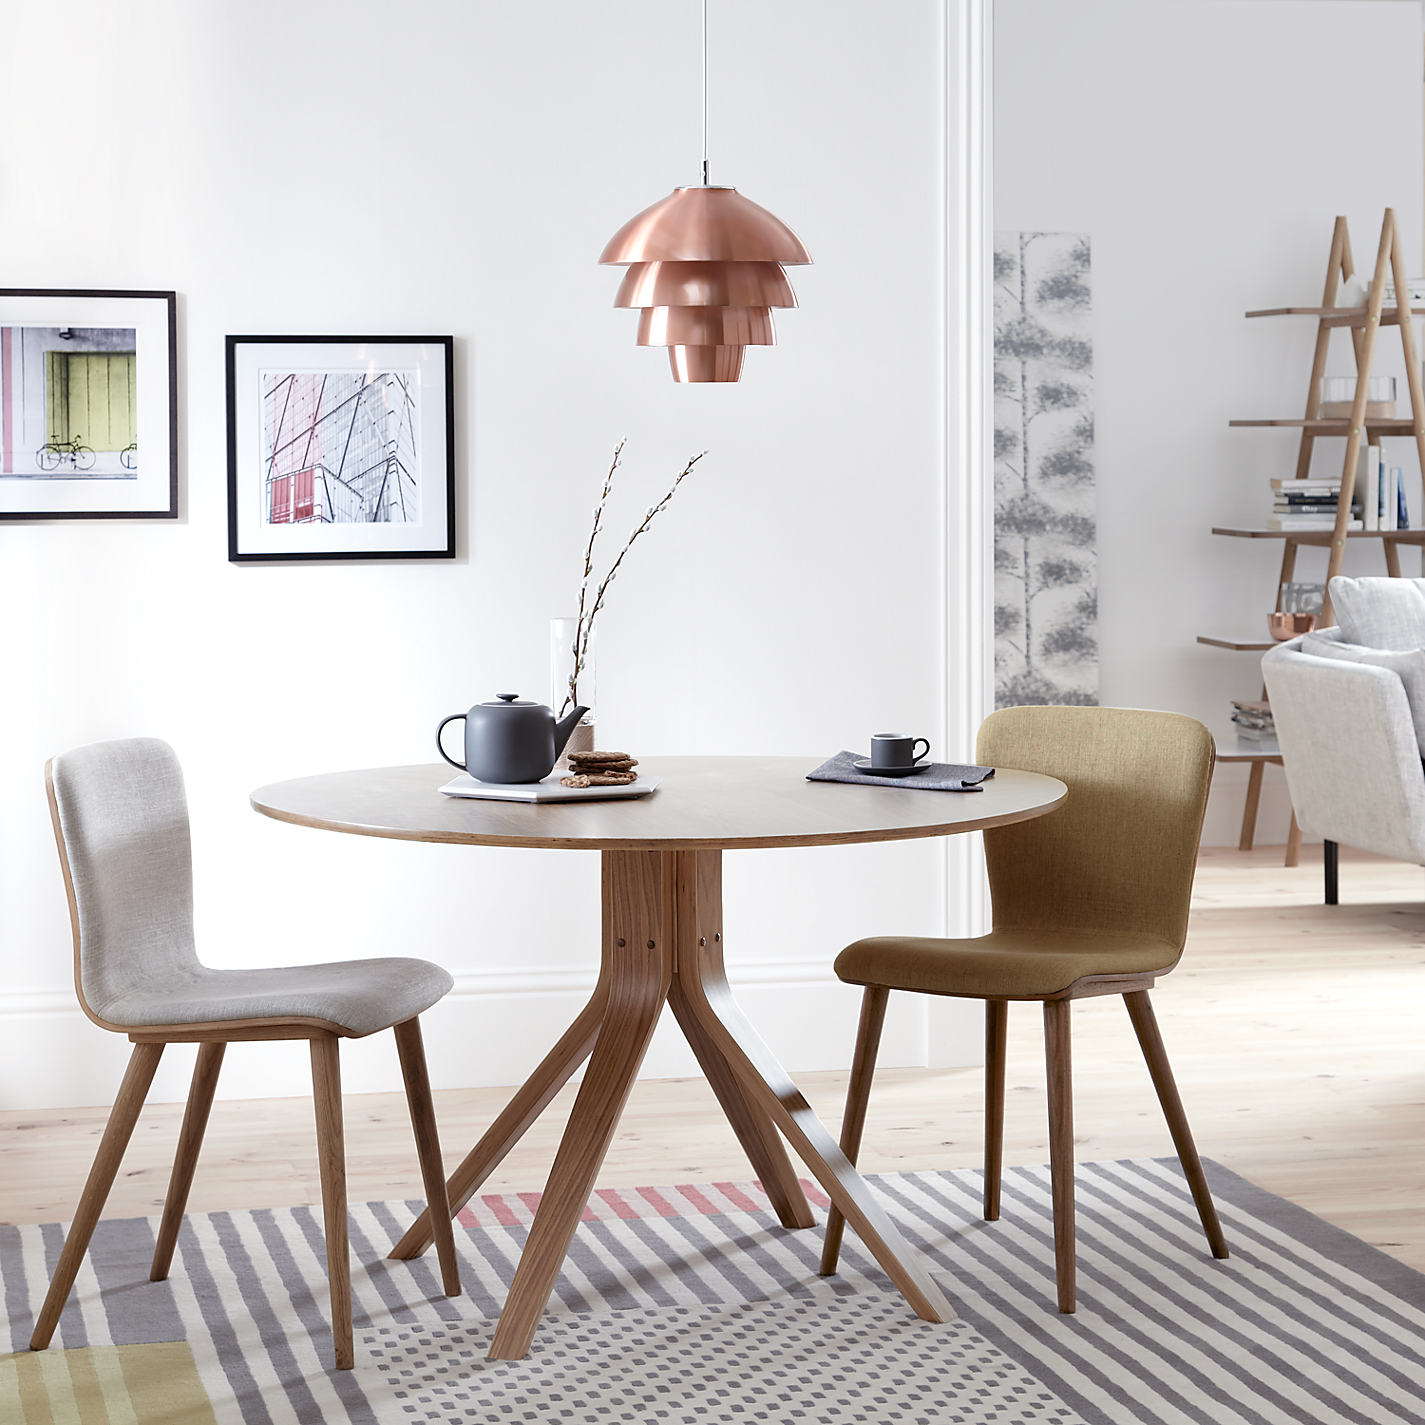 Buy John Lewis Radar 6 Seater Round Dining Table Walnut Online At Johnlewis